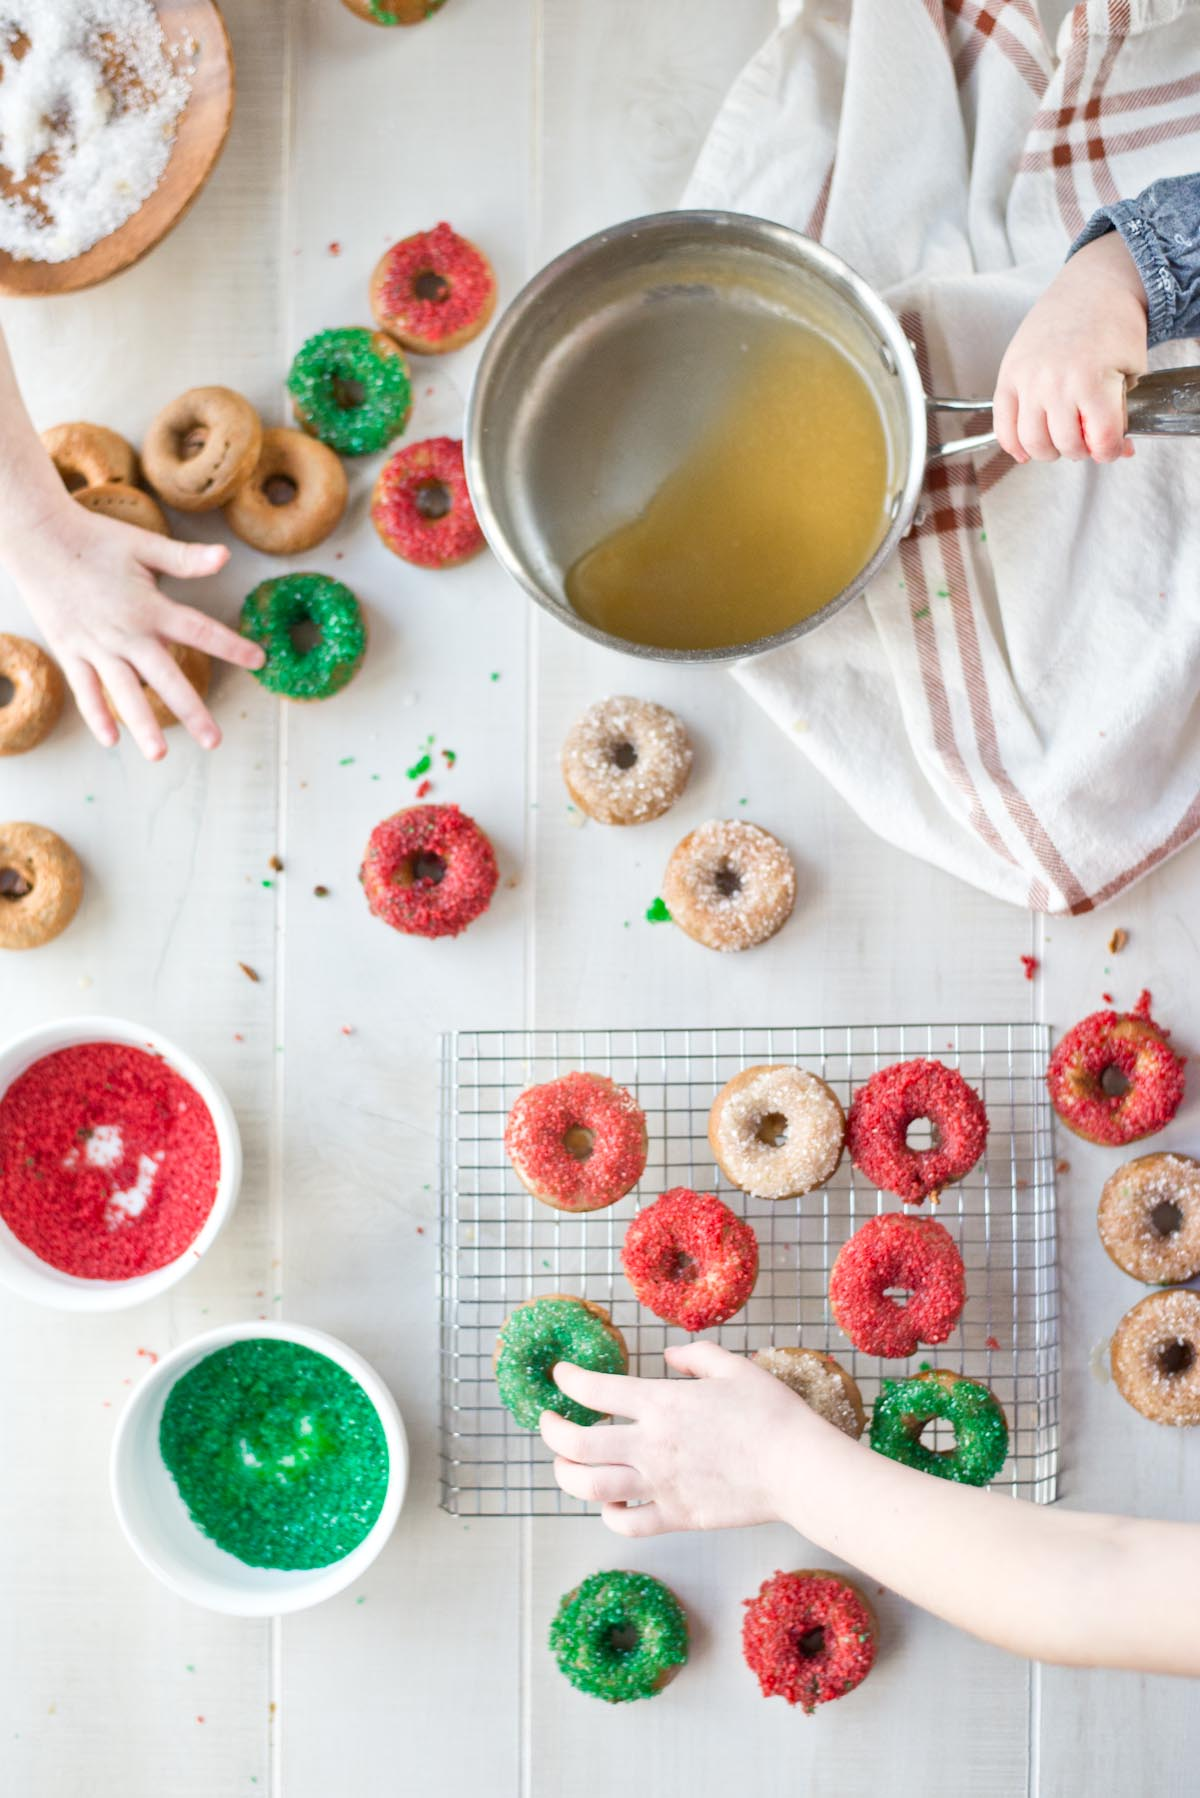 Quick, easy and delicious chai spiced paleo donuts made in less than 20 minutes.